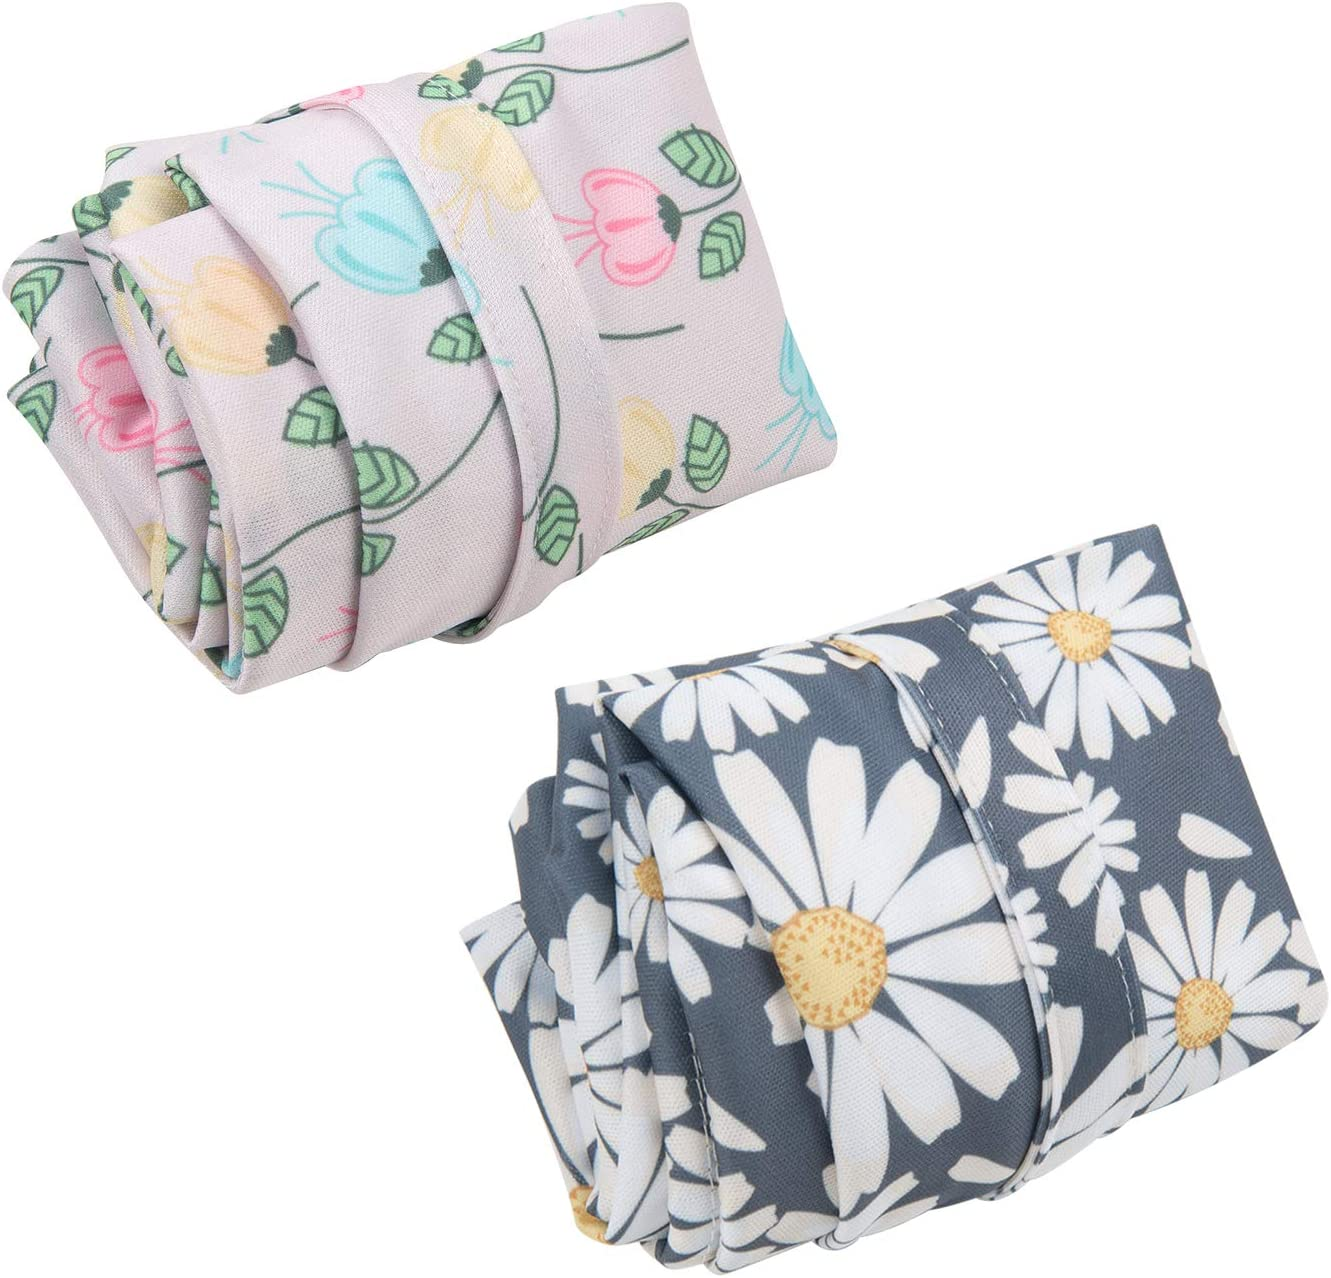 ALVABABY Cloth Diaper Wet Dry Bags Reusable with Two Zippered Pockets Travel Beach Pool Daycare Soiled Baby Items Yoga Gym Bag For Swimsuits Or Wet Clothes 2 Pack Setting Gift L-YX4648-CA